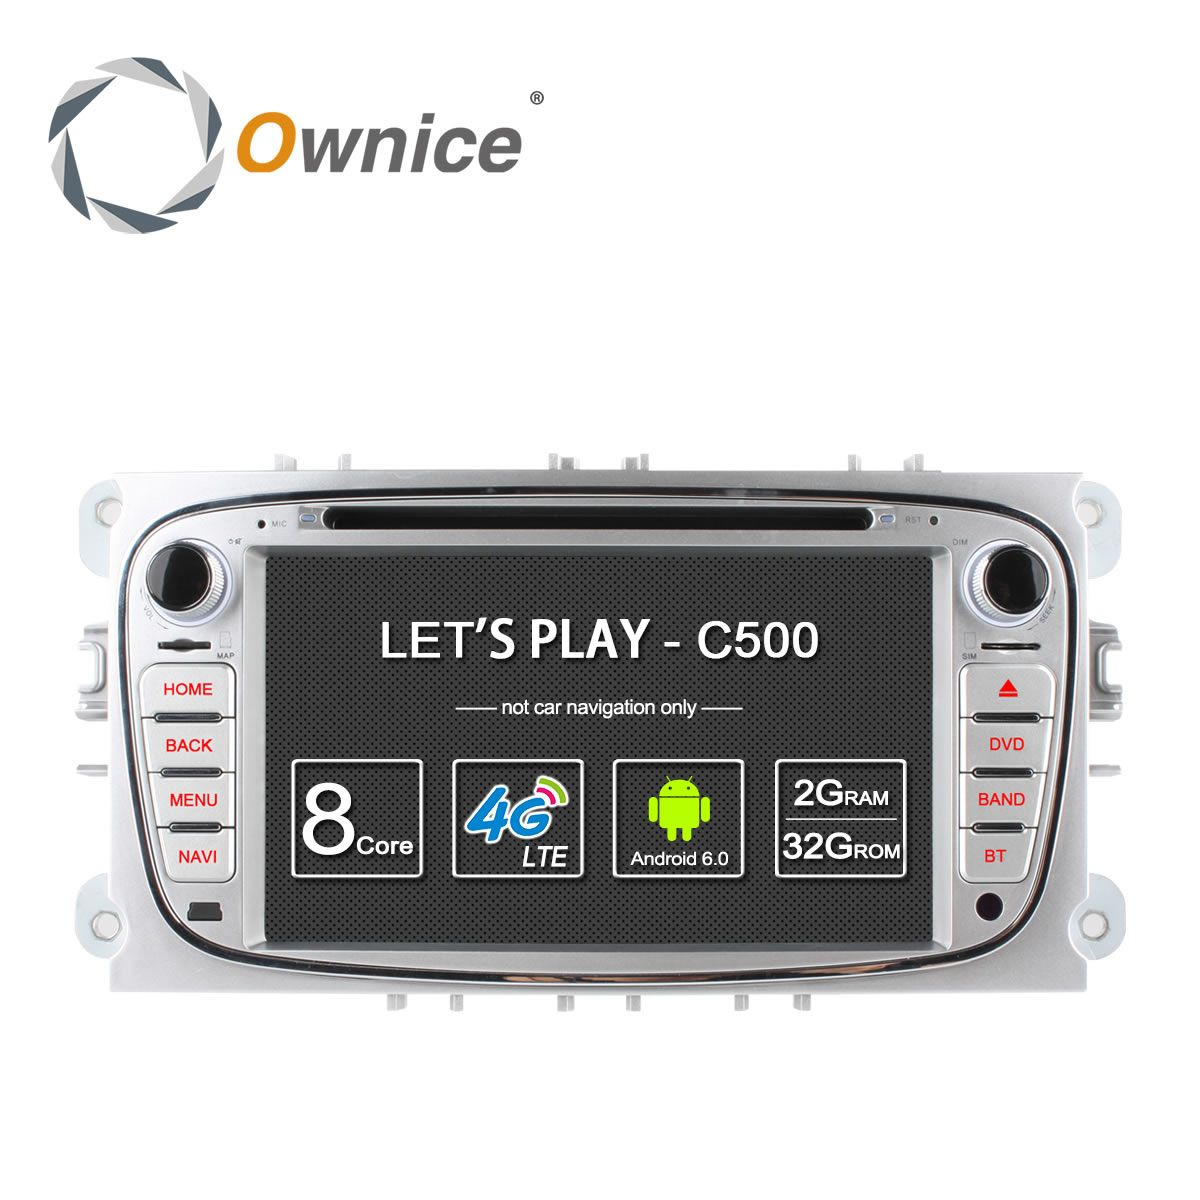 Ownice C500 4G LTE Android 6.0 Octa 8 Core Auto Dvd GPS für FORD Mondeo S-MAX Verbinden FOCUS 2 2008 2009 2010 2011 32G ROM